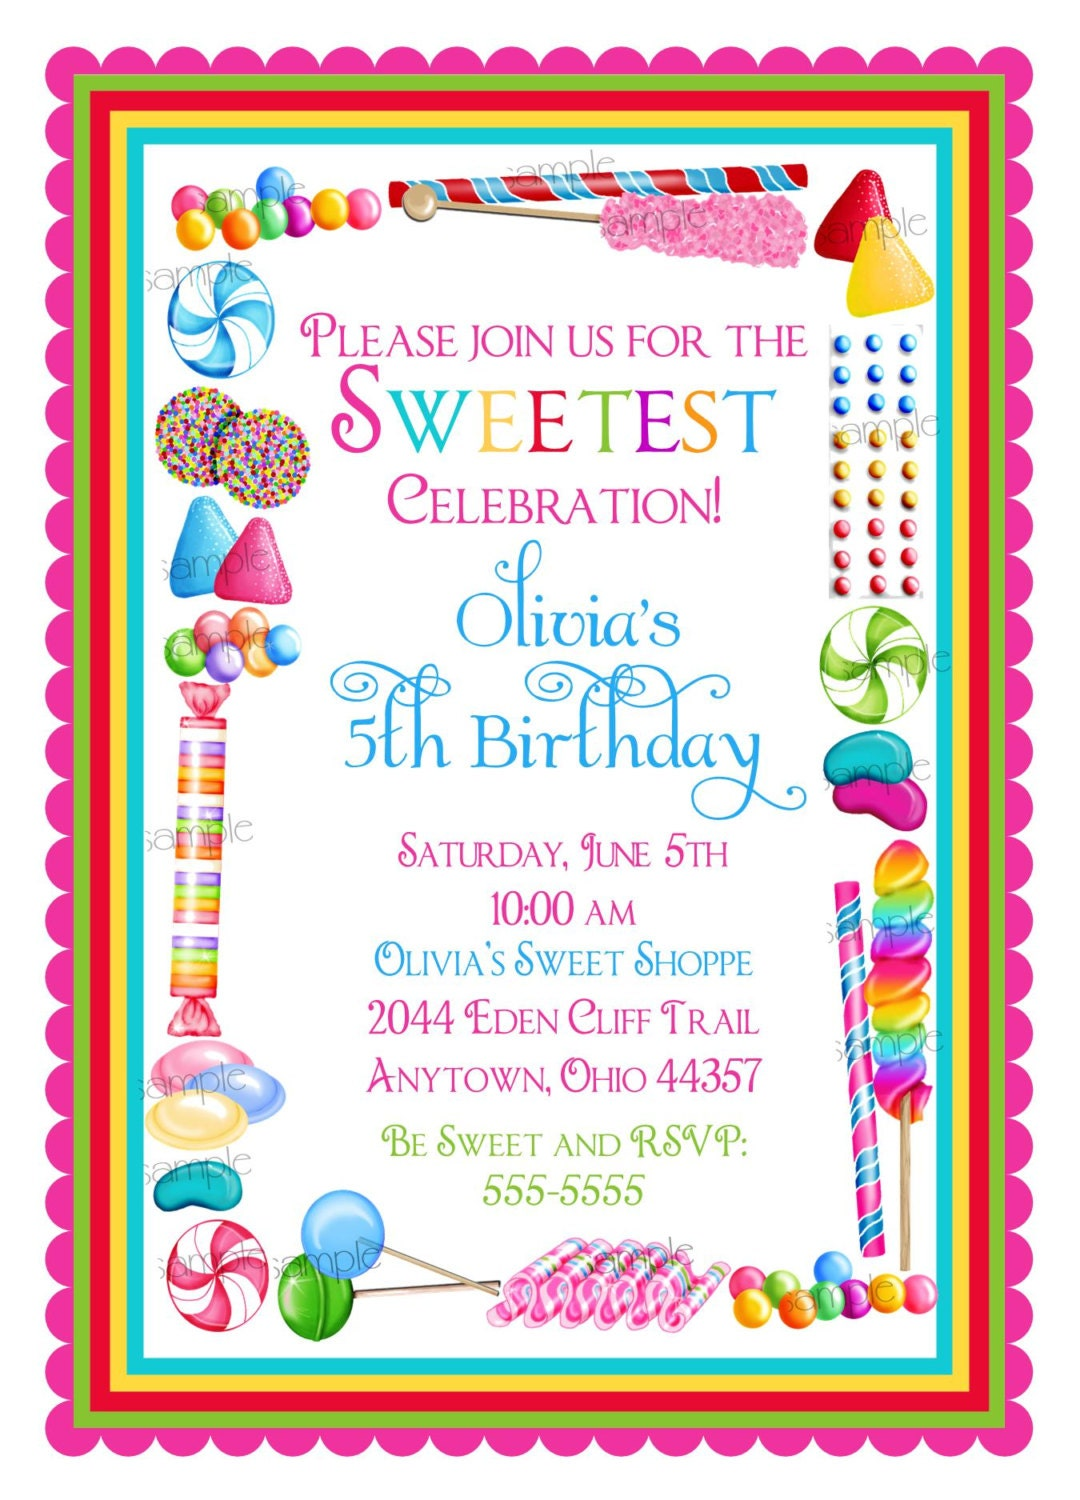 Sweet 16 Party Invitation Templates with good invitations layout